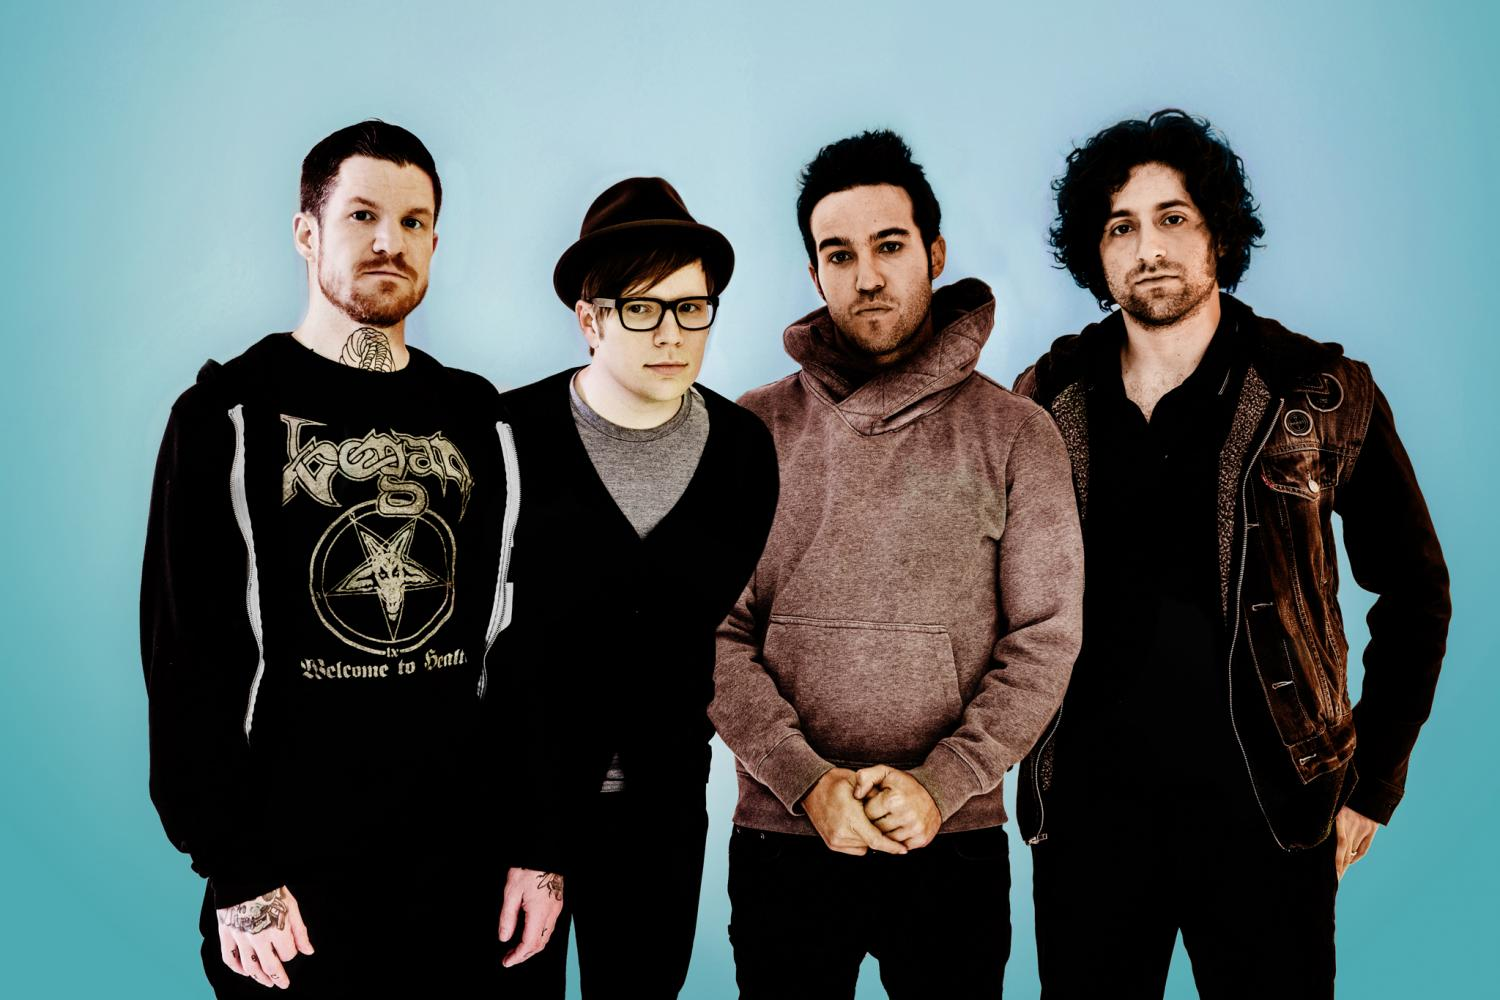 Fall Out Boy Wallpaper Pc Fall Out Boy Wallpapers High Quality Download Free